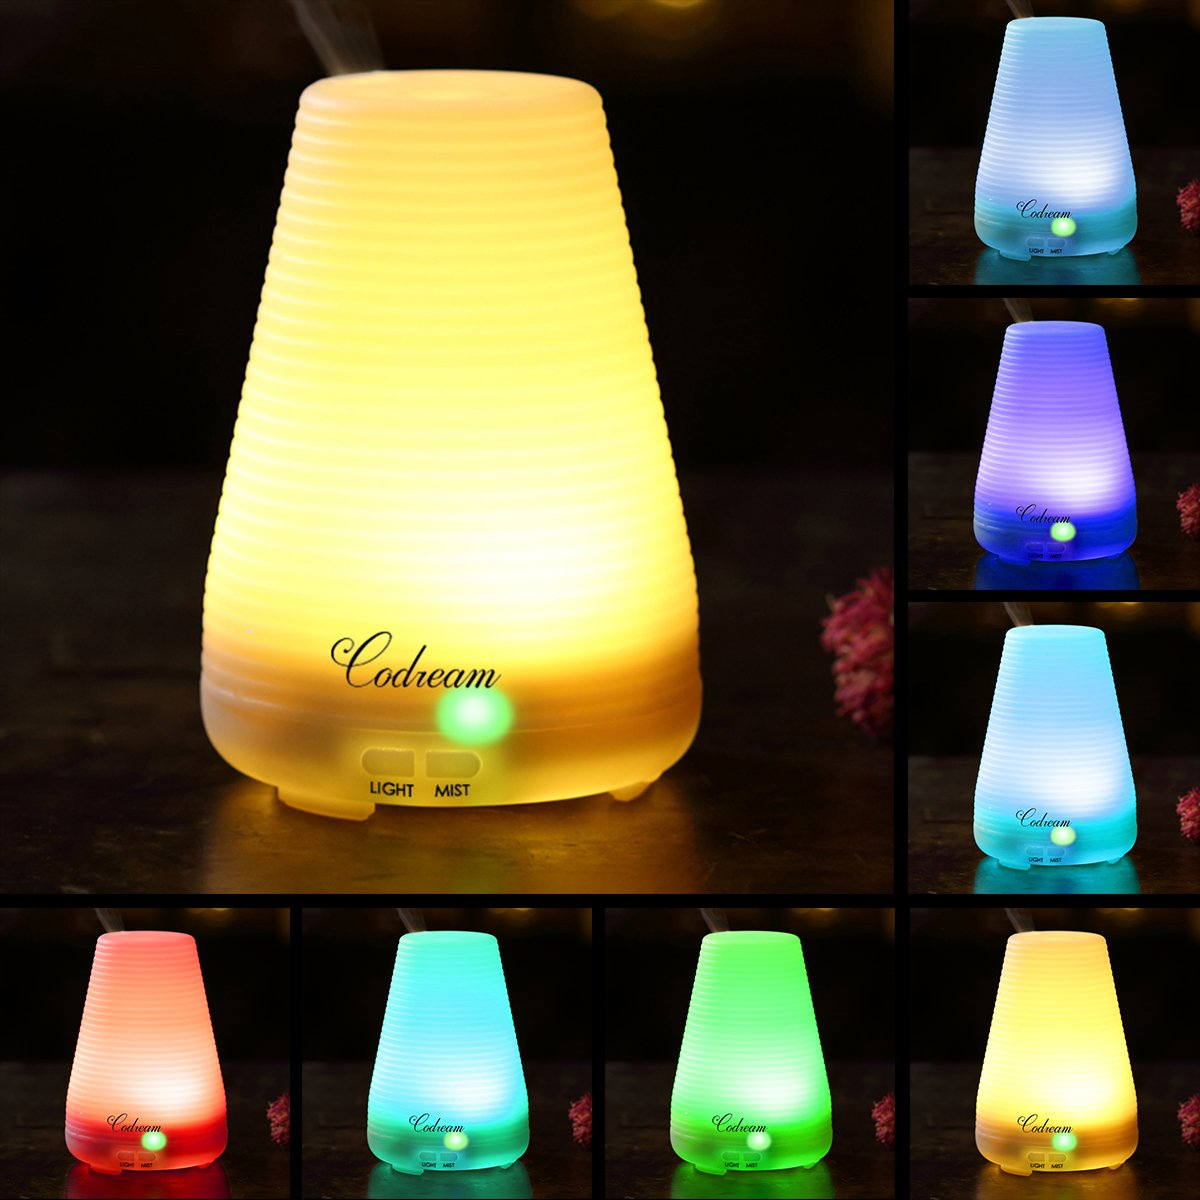 Aromatherapy Essential Oil Diffuser Codream 100ml Aroma Cool Mist Ultrasonic Humidifier With Waterless Auto Shut Off